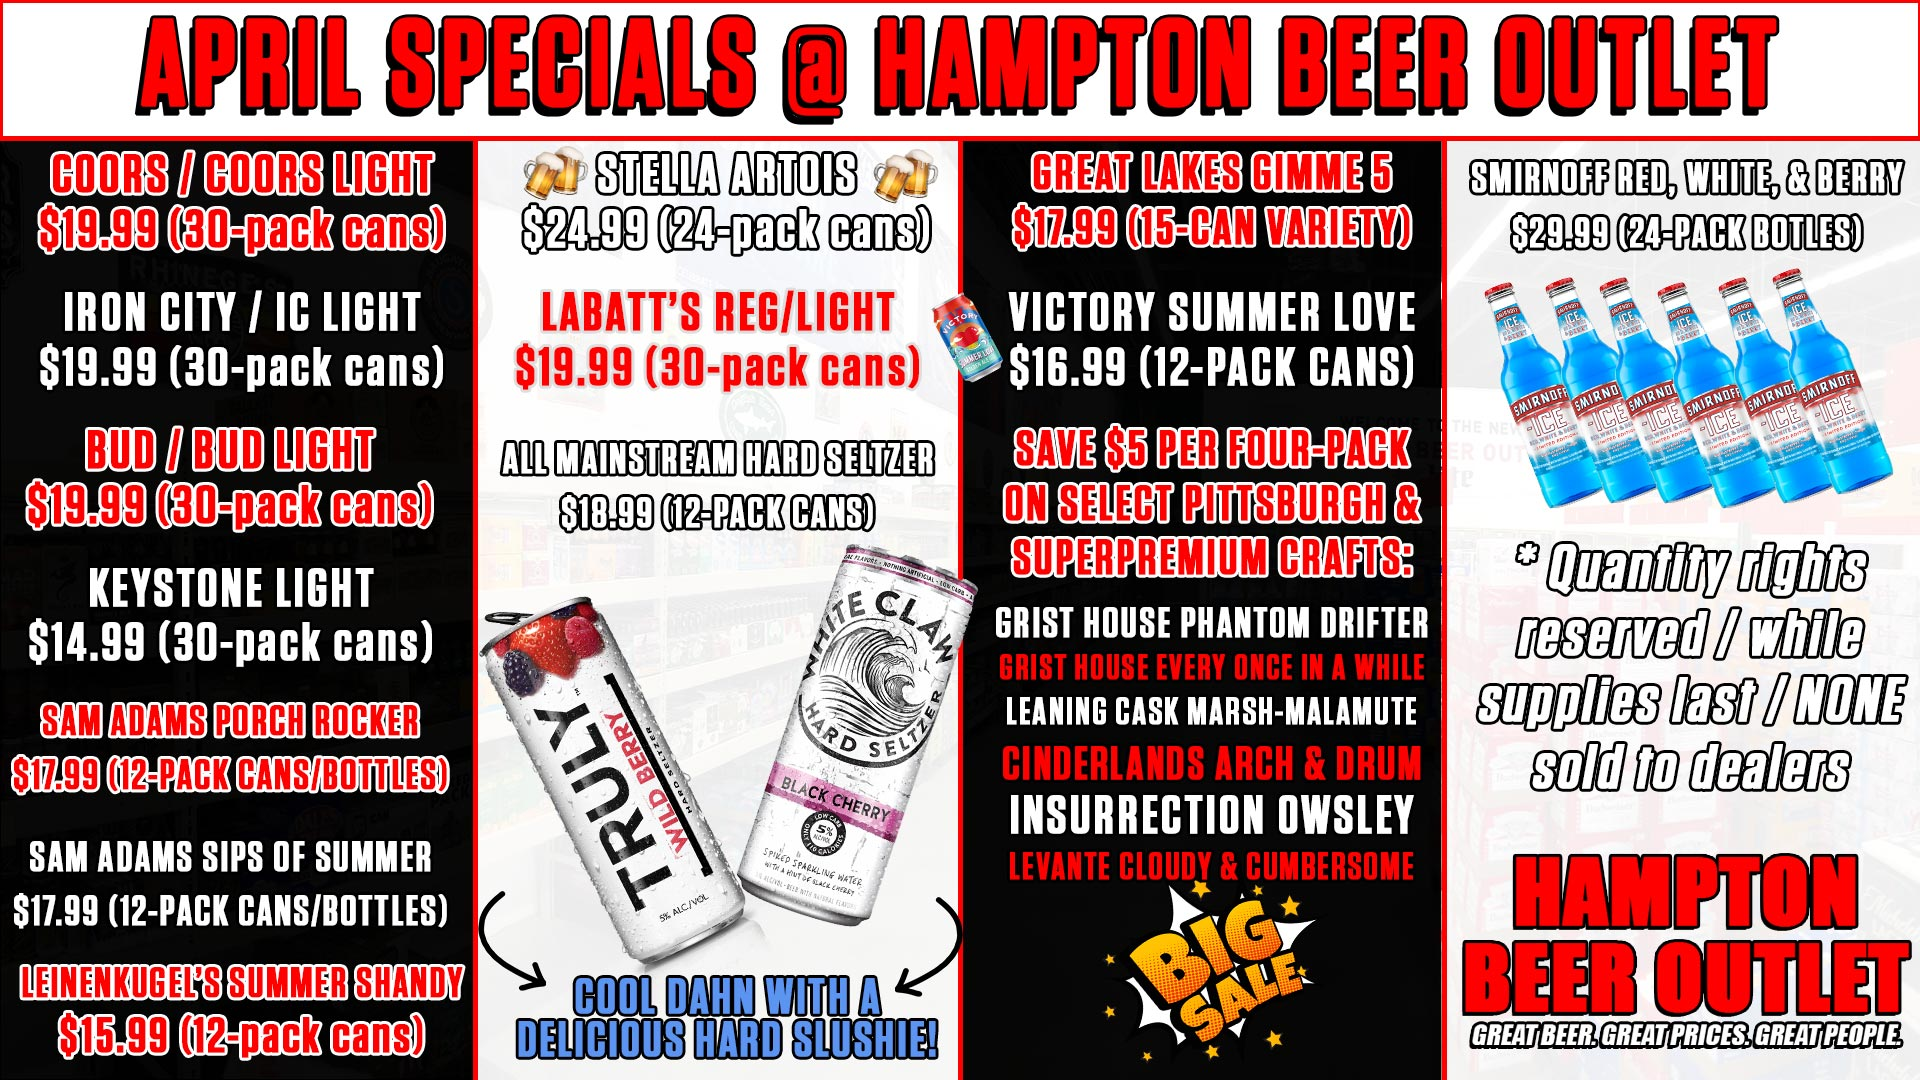 hampton-beer-outlet-specials-april-2021